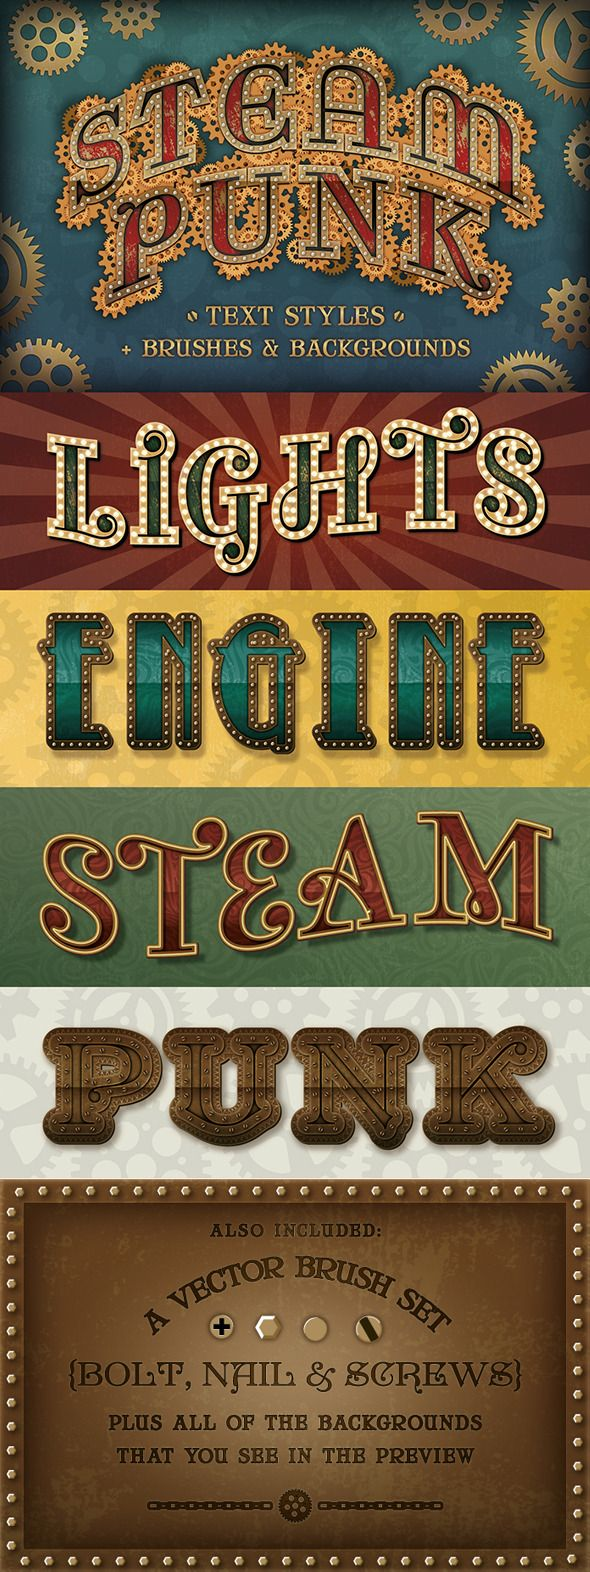 Steam Punk Text Styles + Brushes & Backgrounds — Vector EPS #circus #circus text • Available here → https://graphicriver.net/item/steam-punk-text-styles-brushes-backgrounds/12054034?ref=pxcr